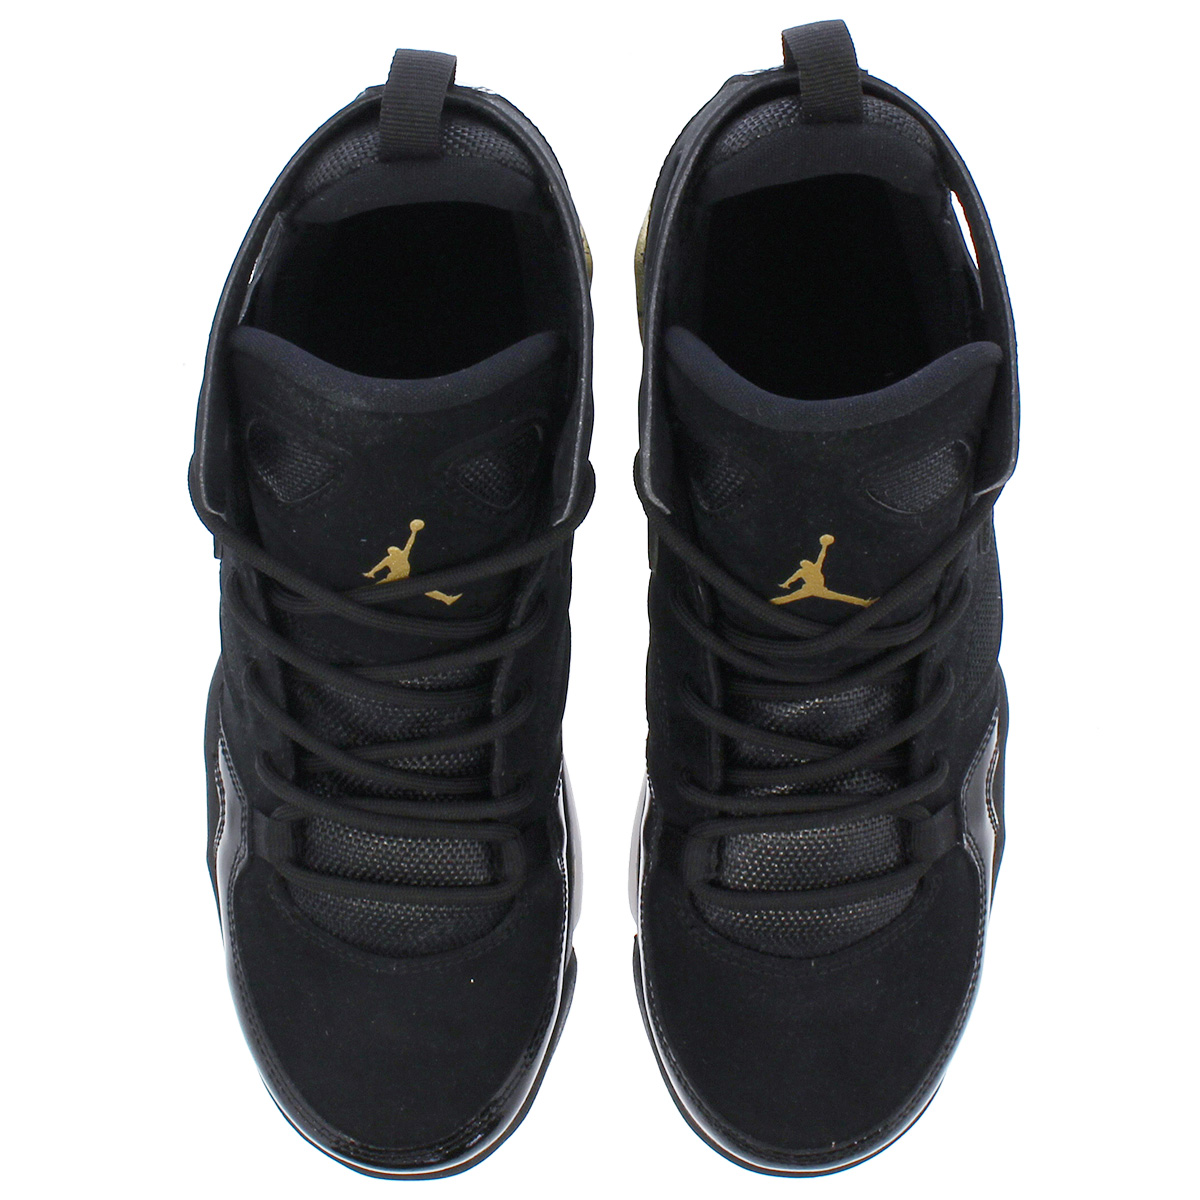 d8e79d72bf57d8 NIKE JORDAN FLIGHT CLUB 91 GS Nike Jordan flight club 91 GS BLACK GOLD WHITE  555